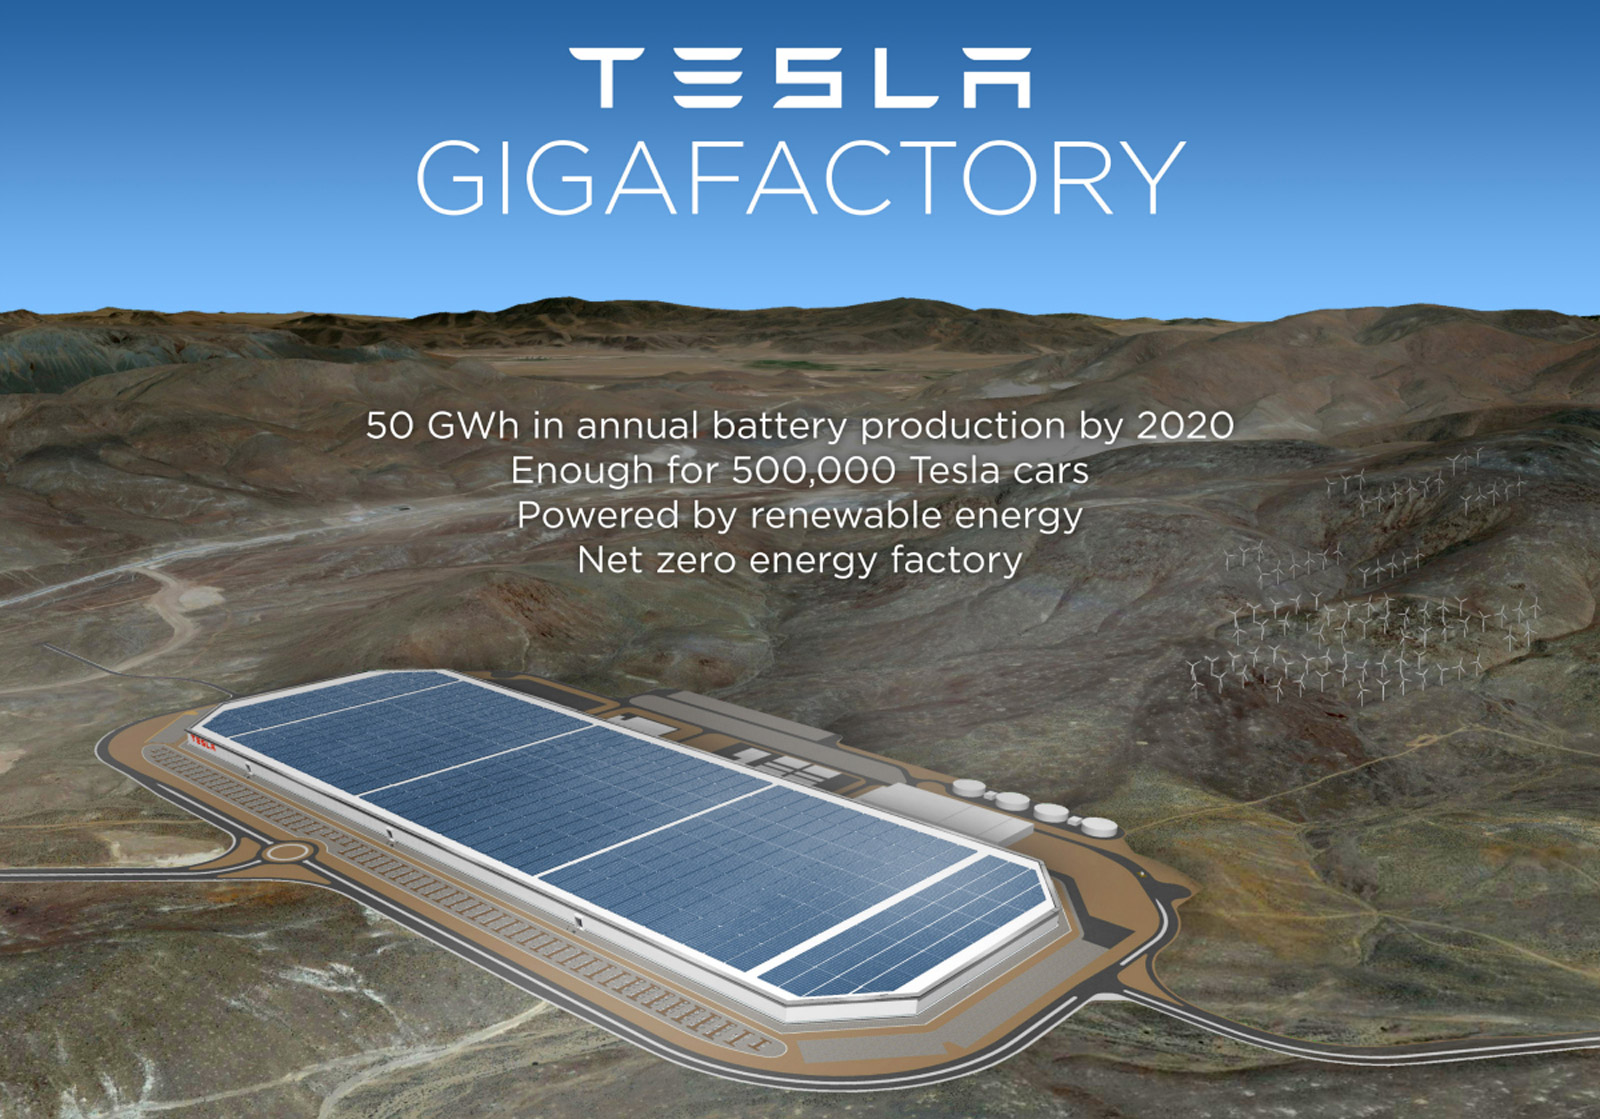 Gm Manufacturing Plant Locations furthermore Advanced Manufacturing Facility In The World moreover Big Tesla Gigafactory Graphics besides Class Presentation Tesla Motors further 78. on tesla motors manufacturing location